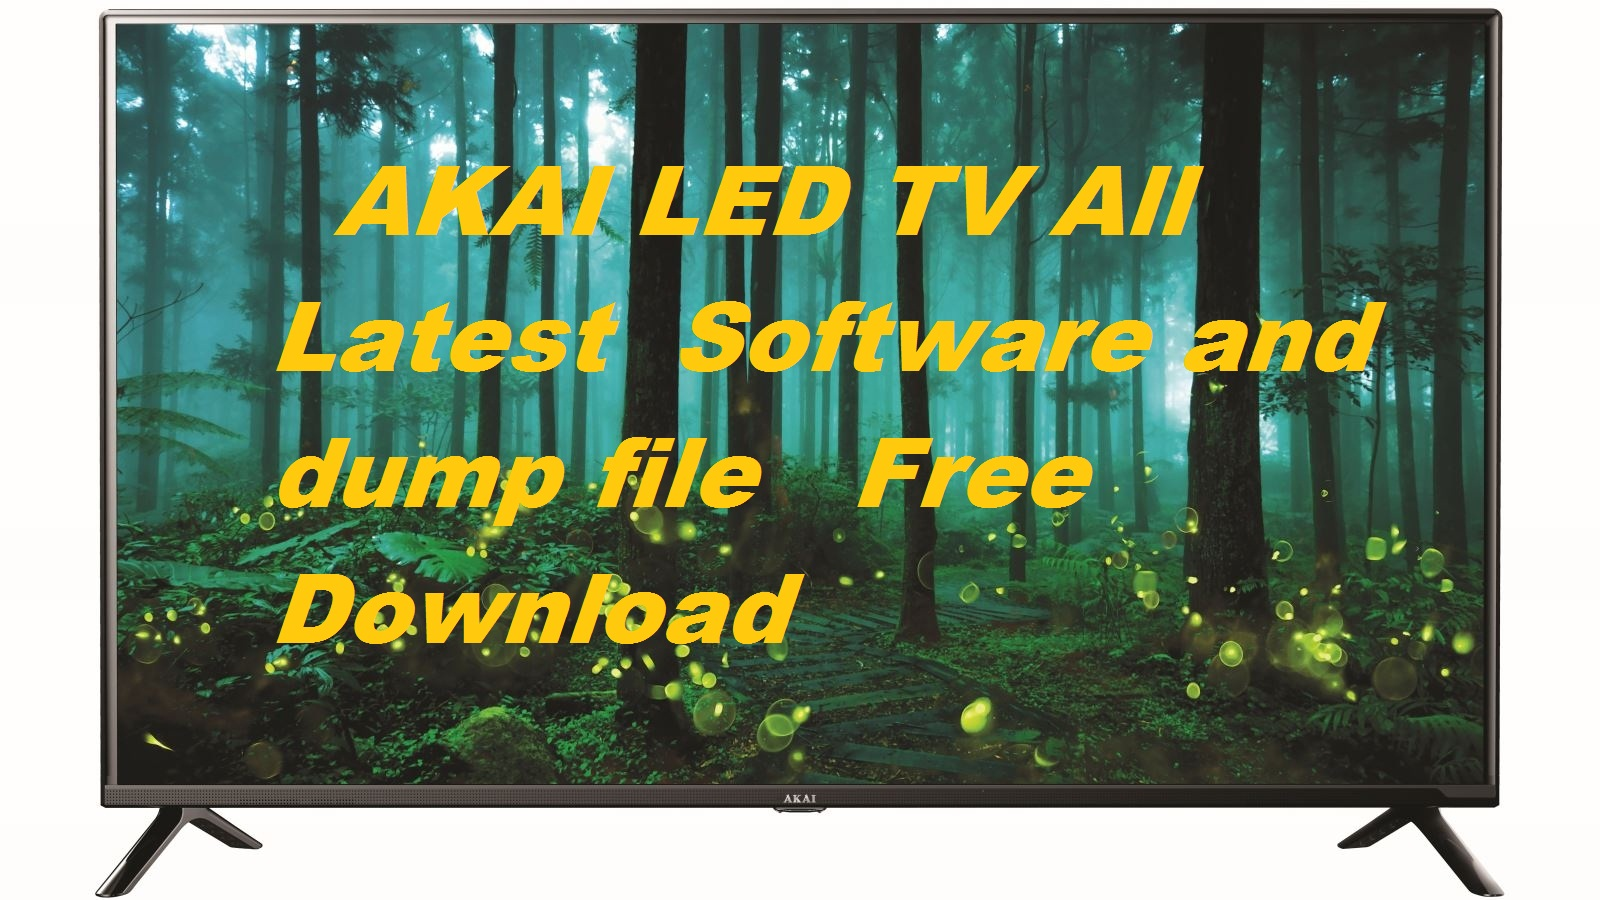 AKAI LED TV All Latest Software and dump file Free Download